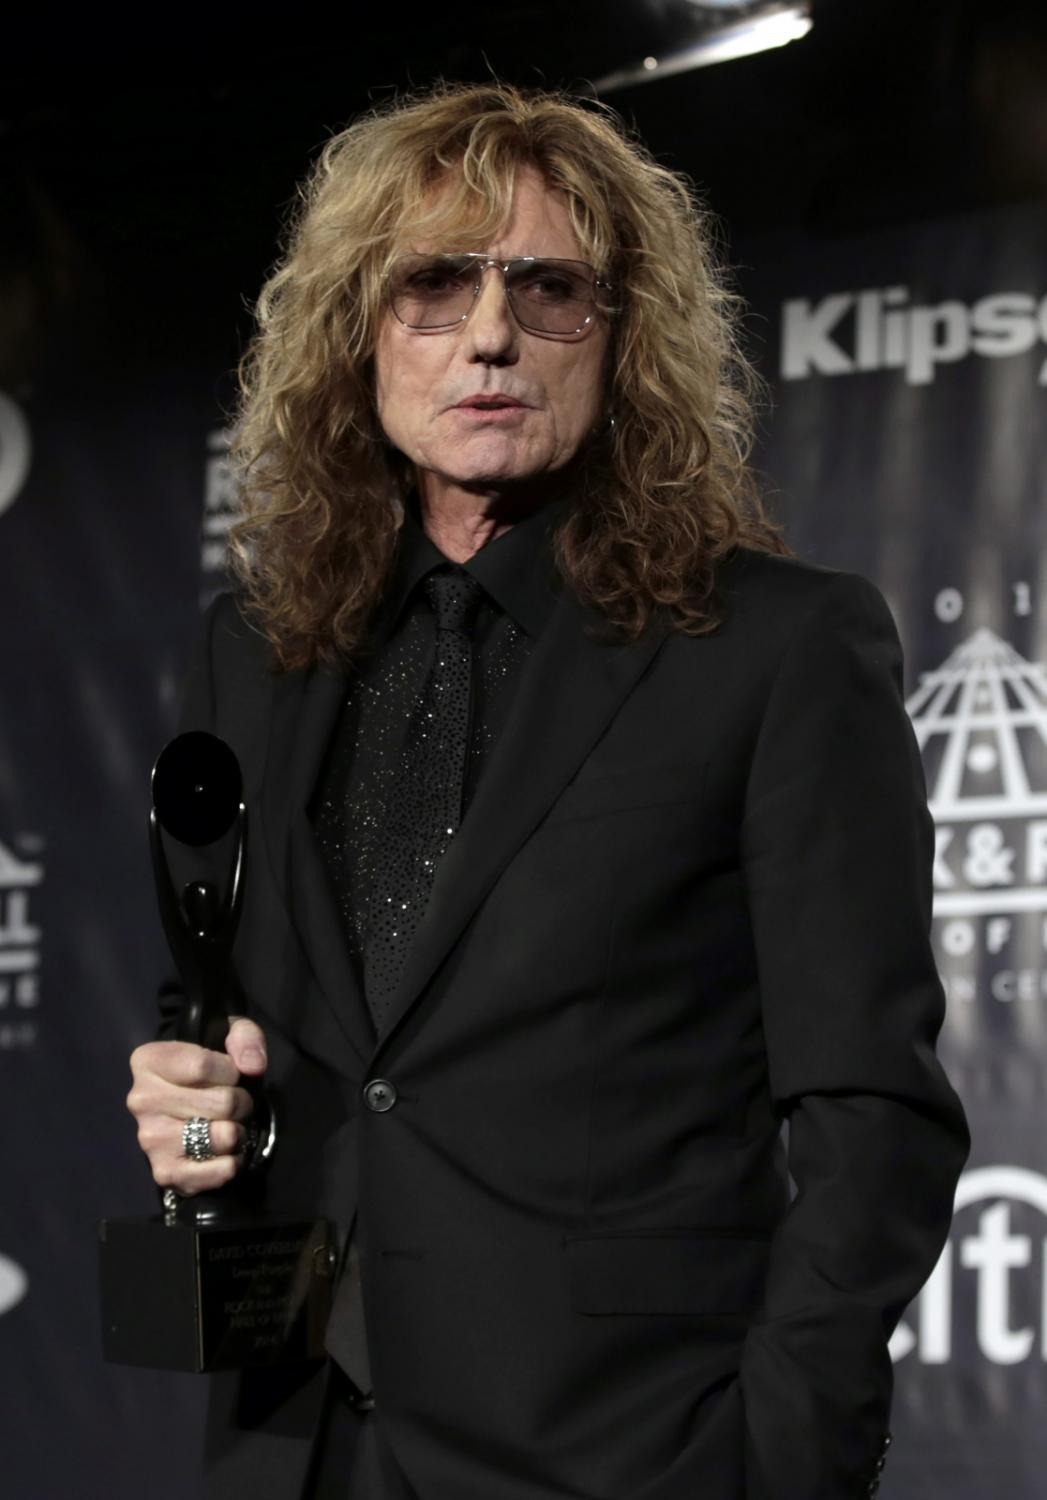 David Coverdale podczas ceremonii wprowadzenia do Rock and Roll Hall of Fame